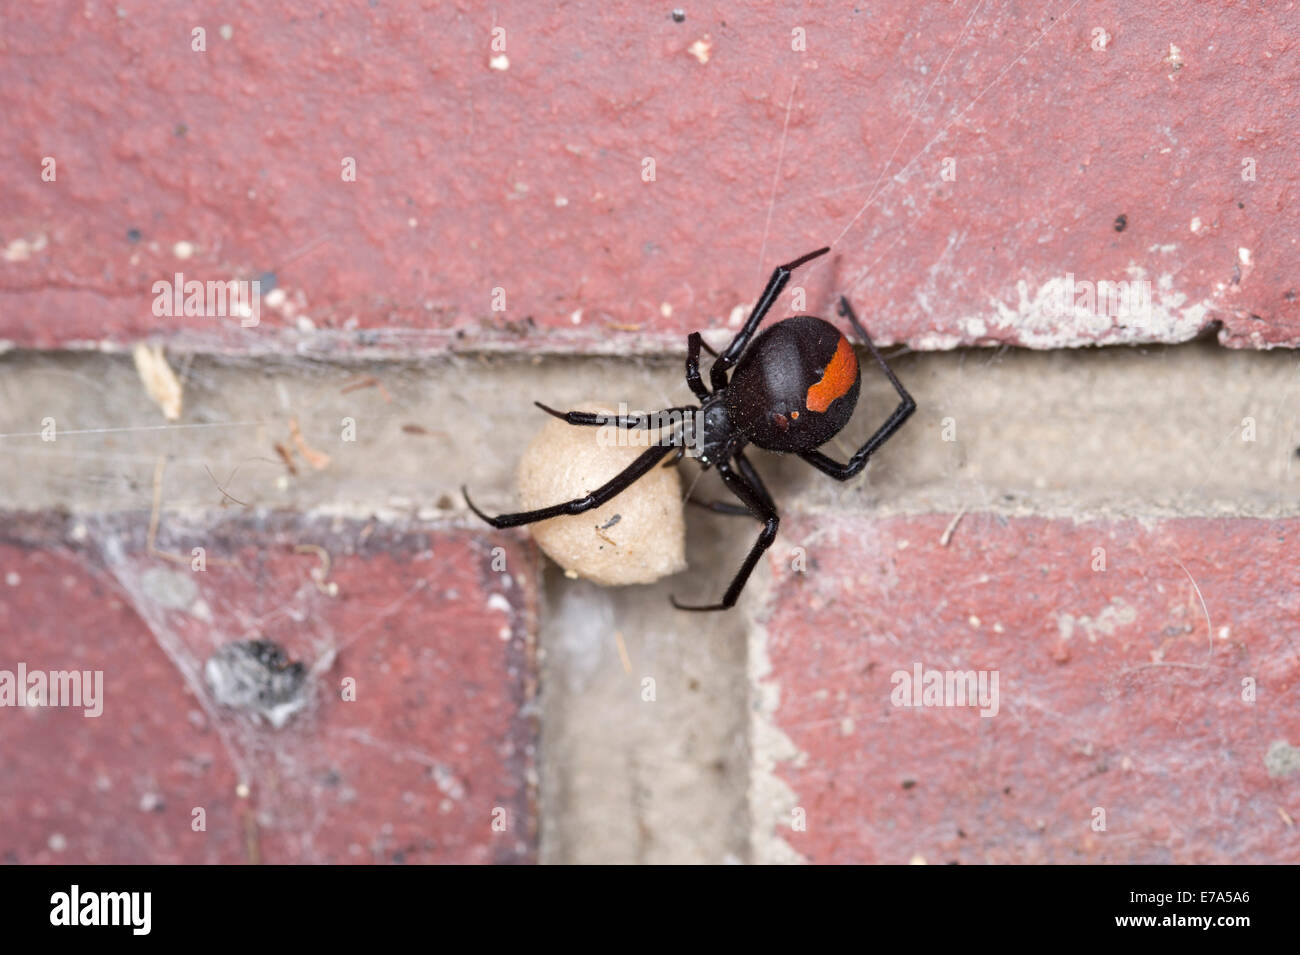 Australian female red-back spider with egg sac - Stock Image